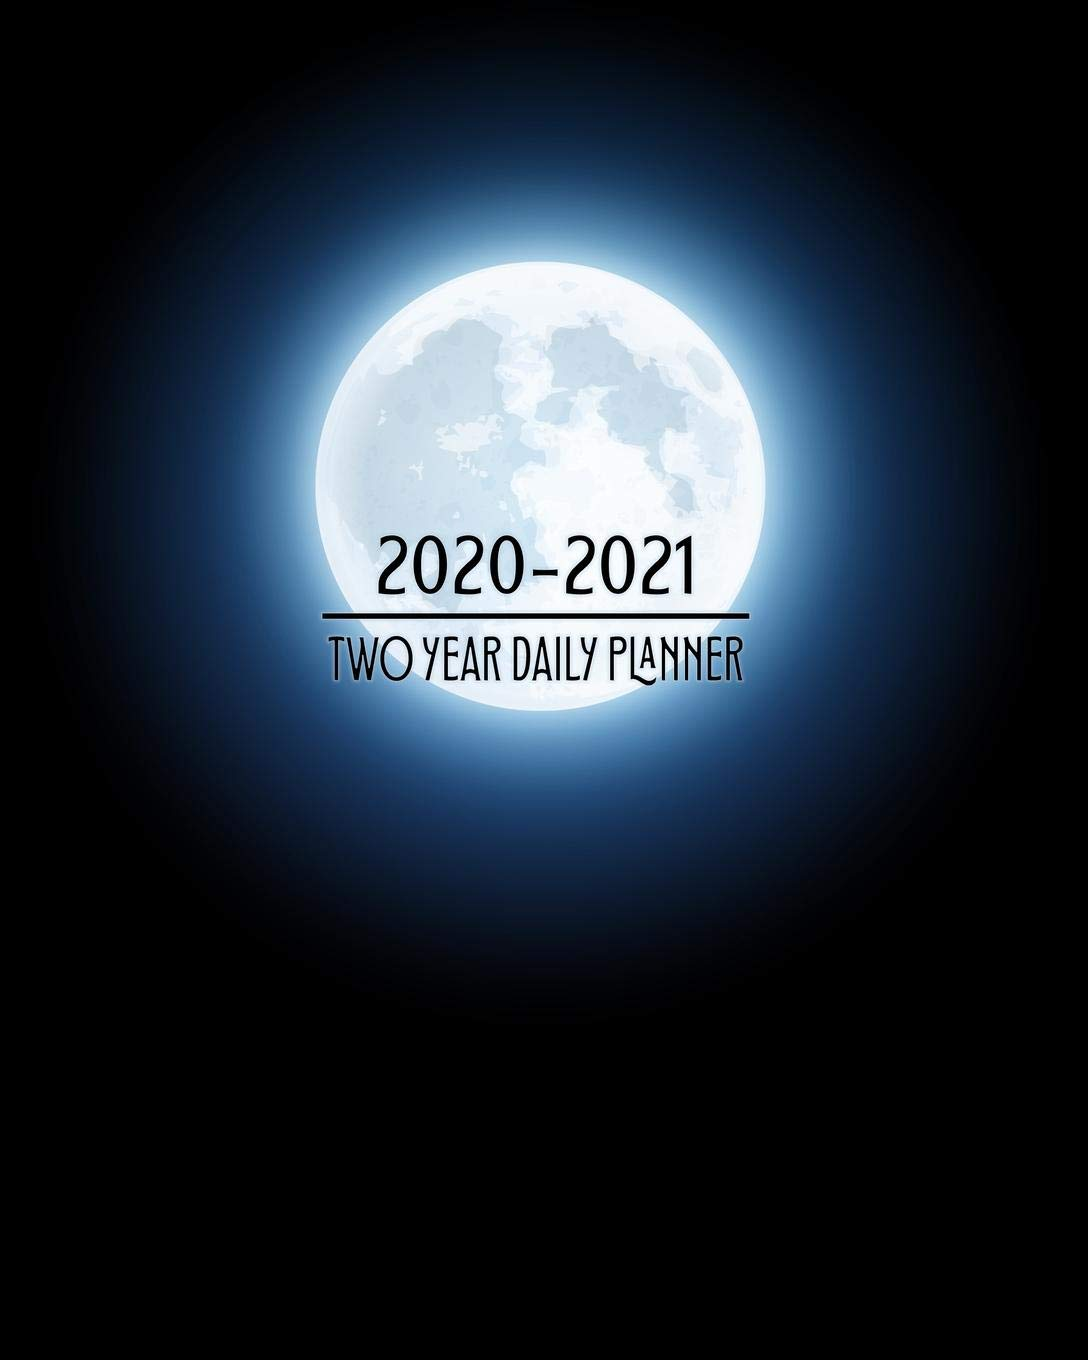 2020 - 2021 Two Year Daily Planner: Full Moon Fever Gothic